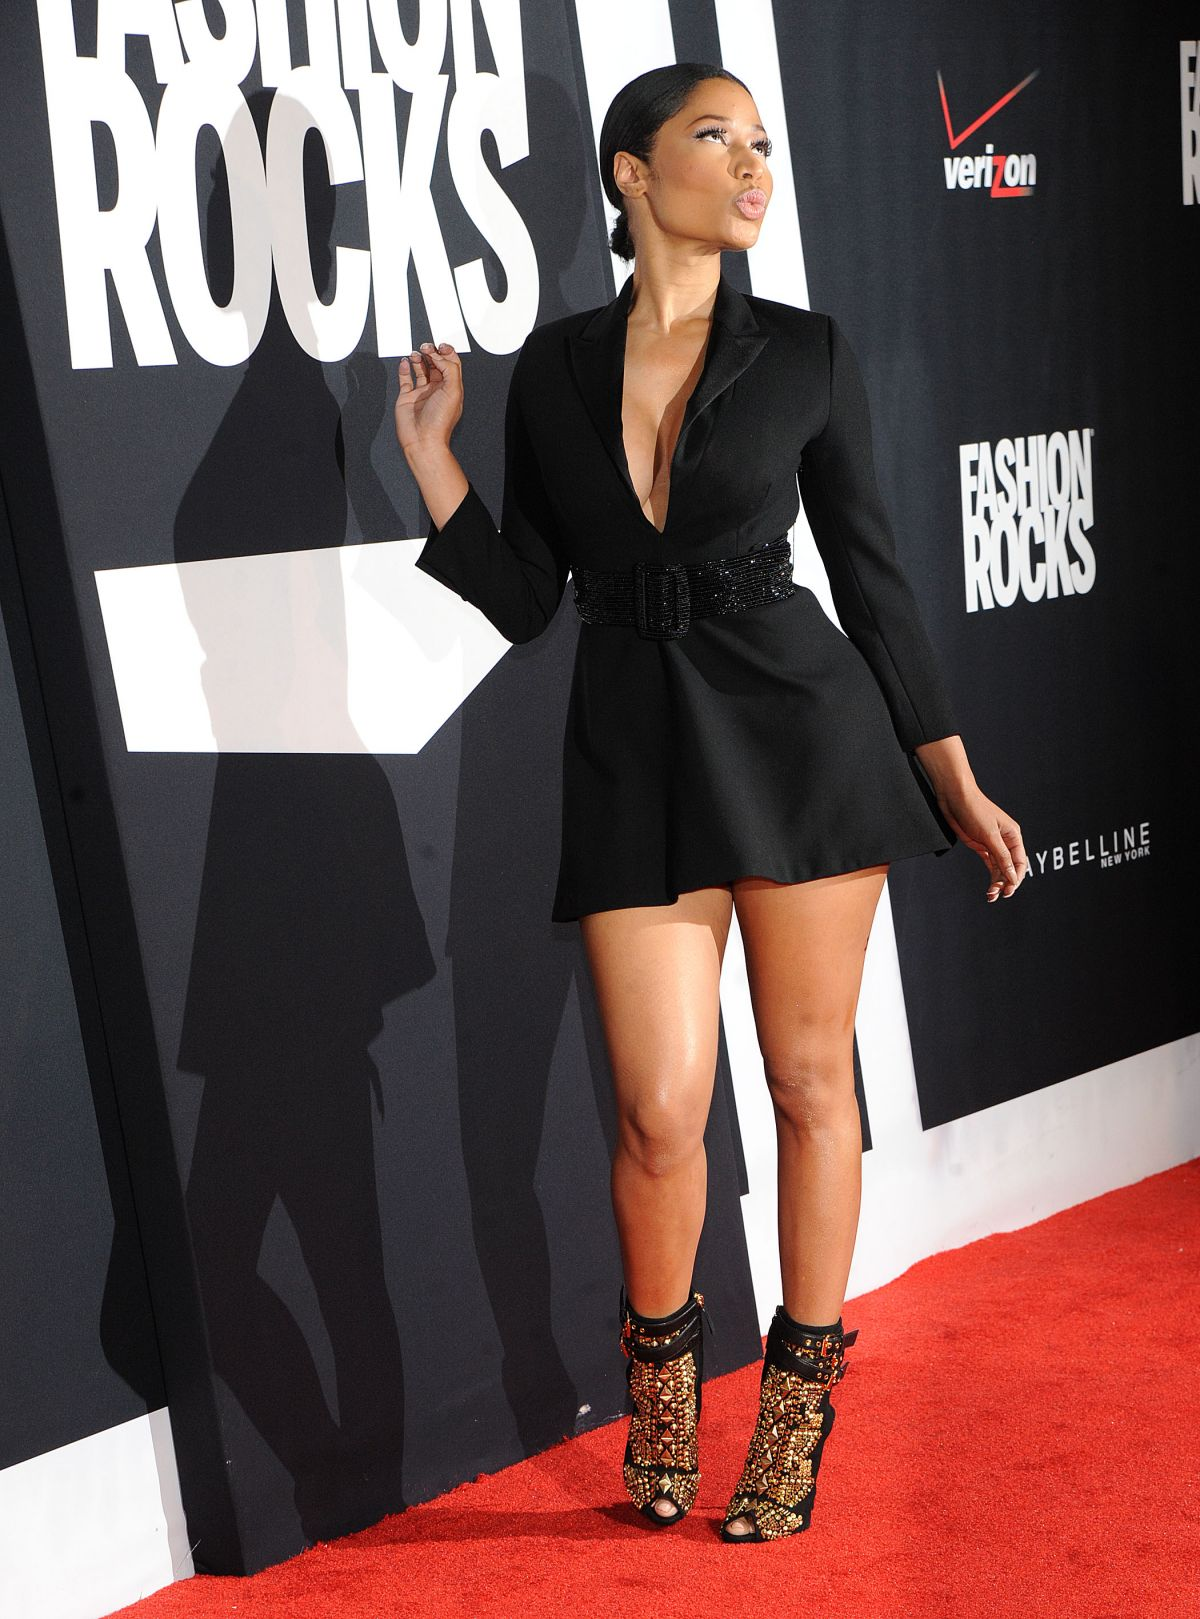 Nicki Minaj At Fashion Rocks 2014 In New York Hawtcelebs Hawtcelebs